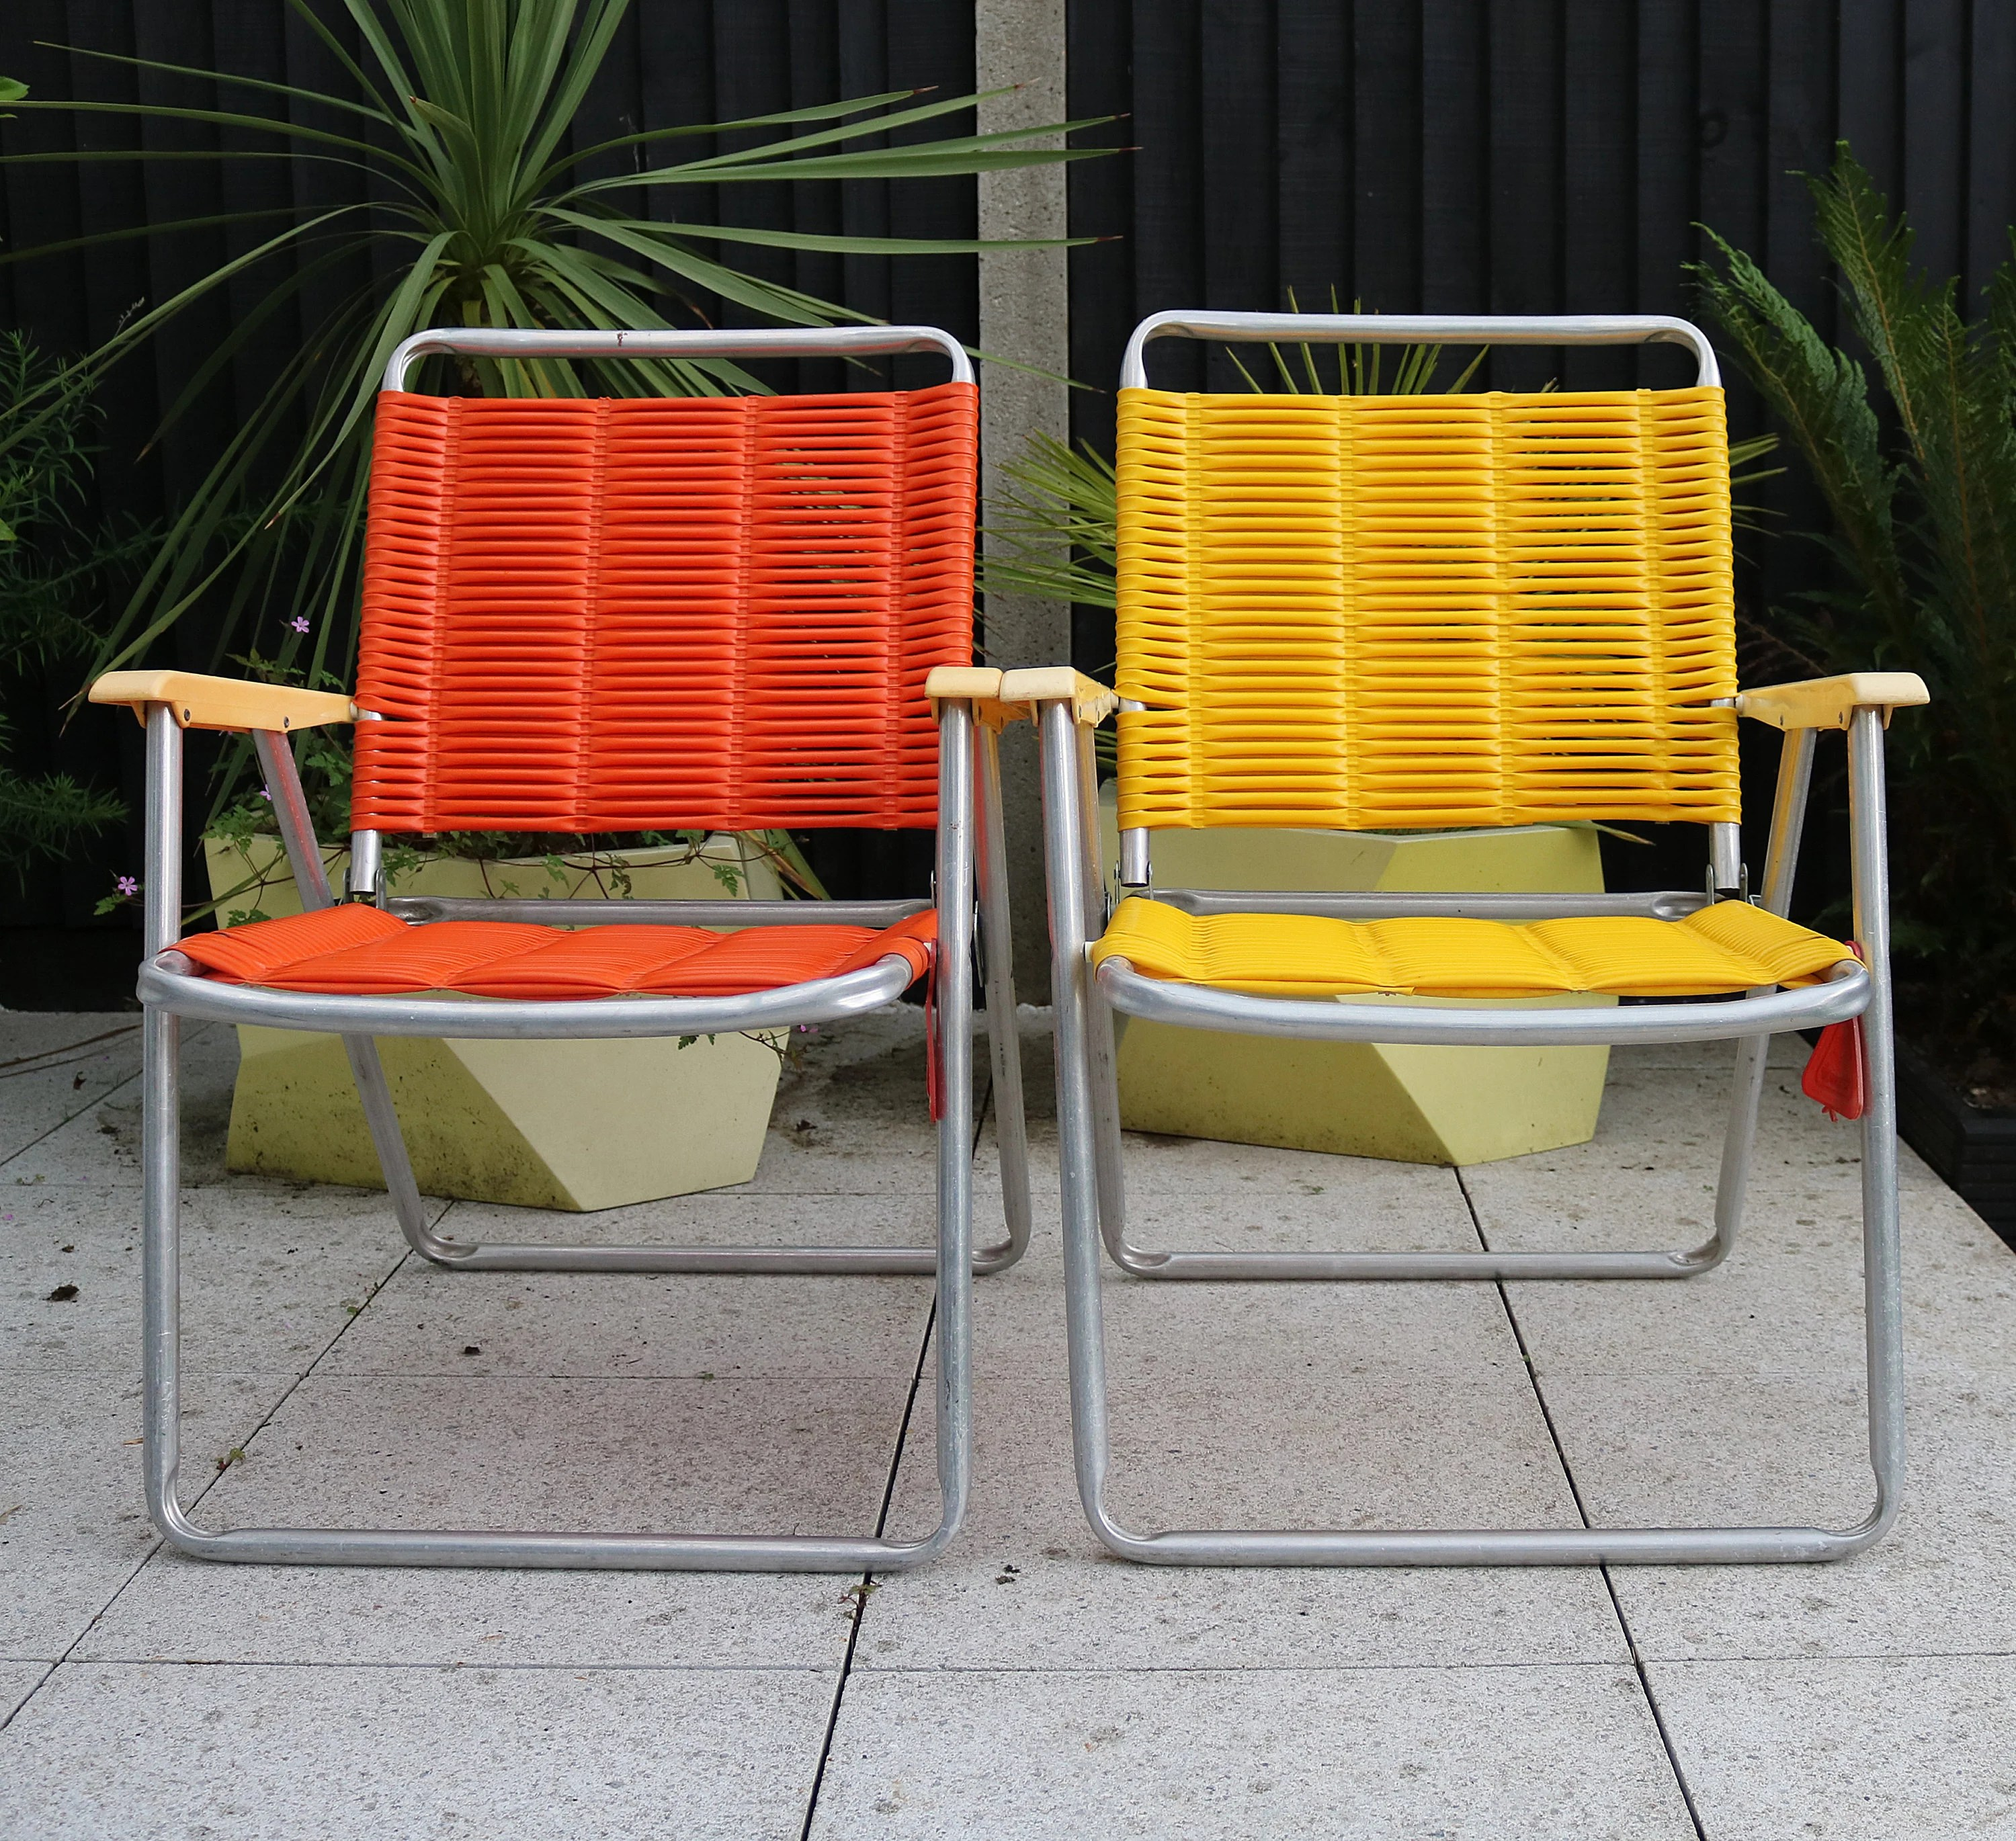 woven plastic garden chairs chair covers uk rare west german 1970s aluminium and string etsy image 0